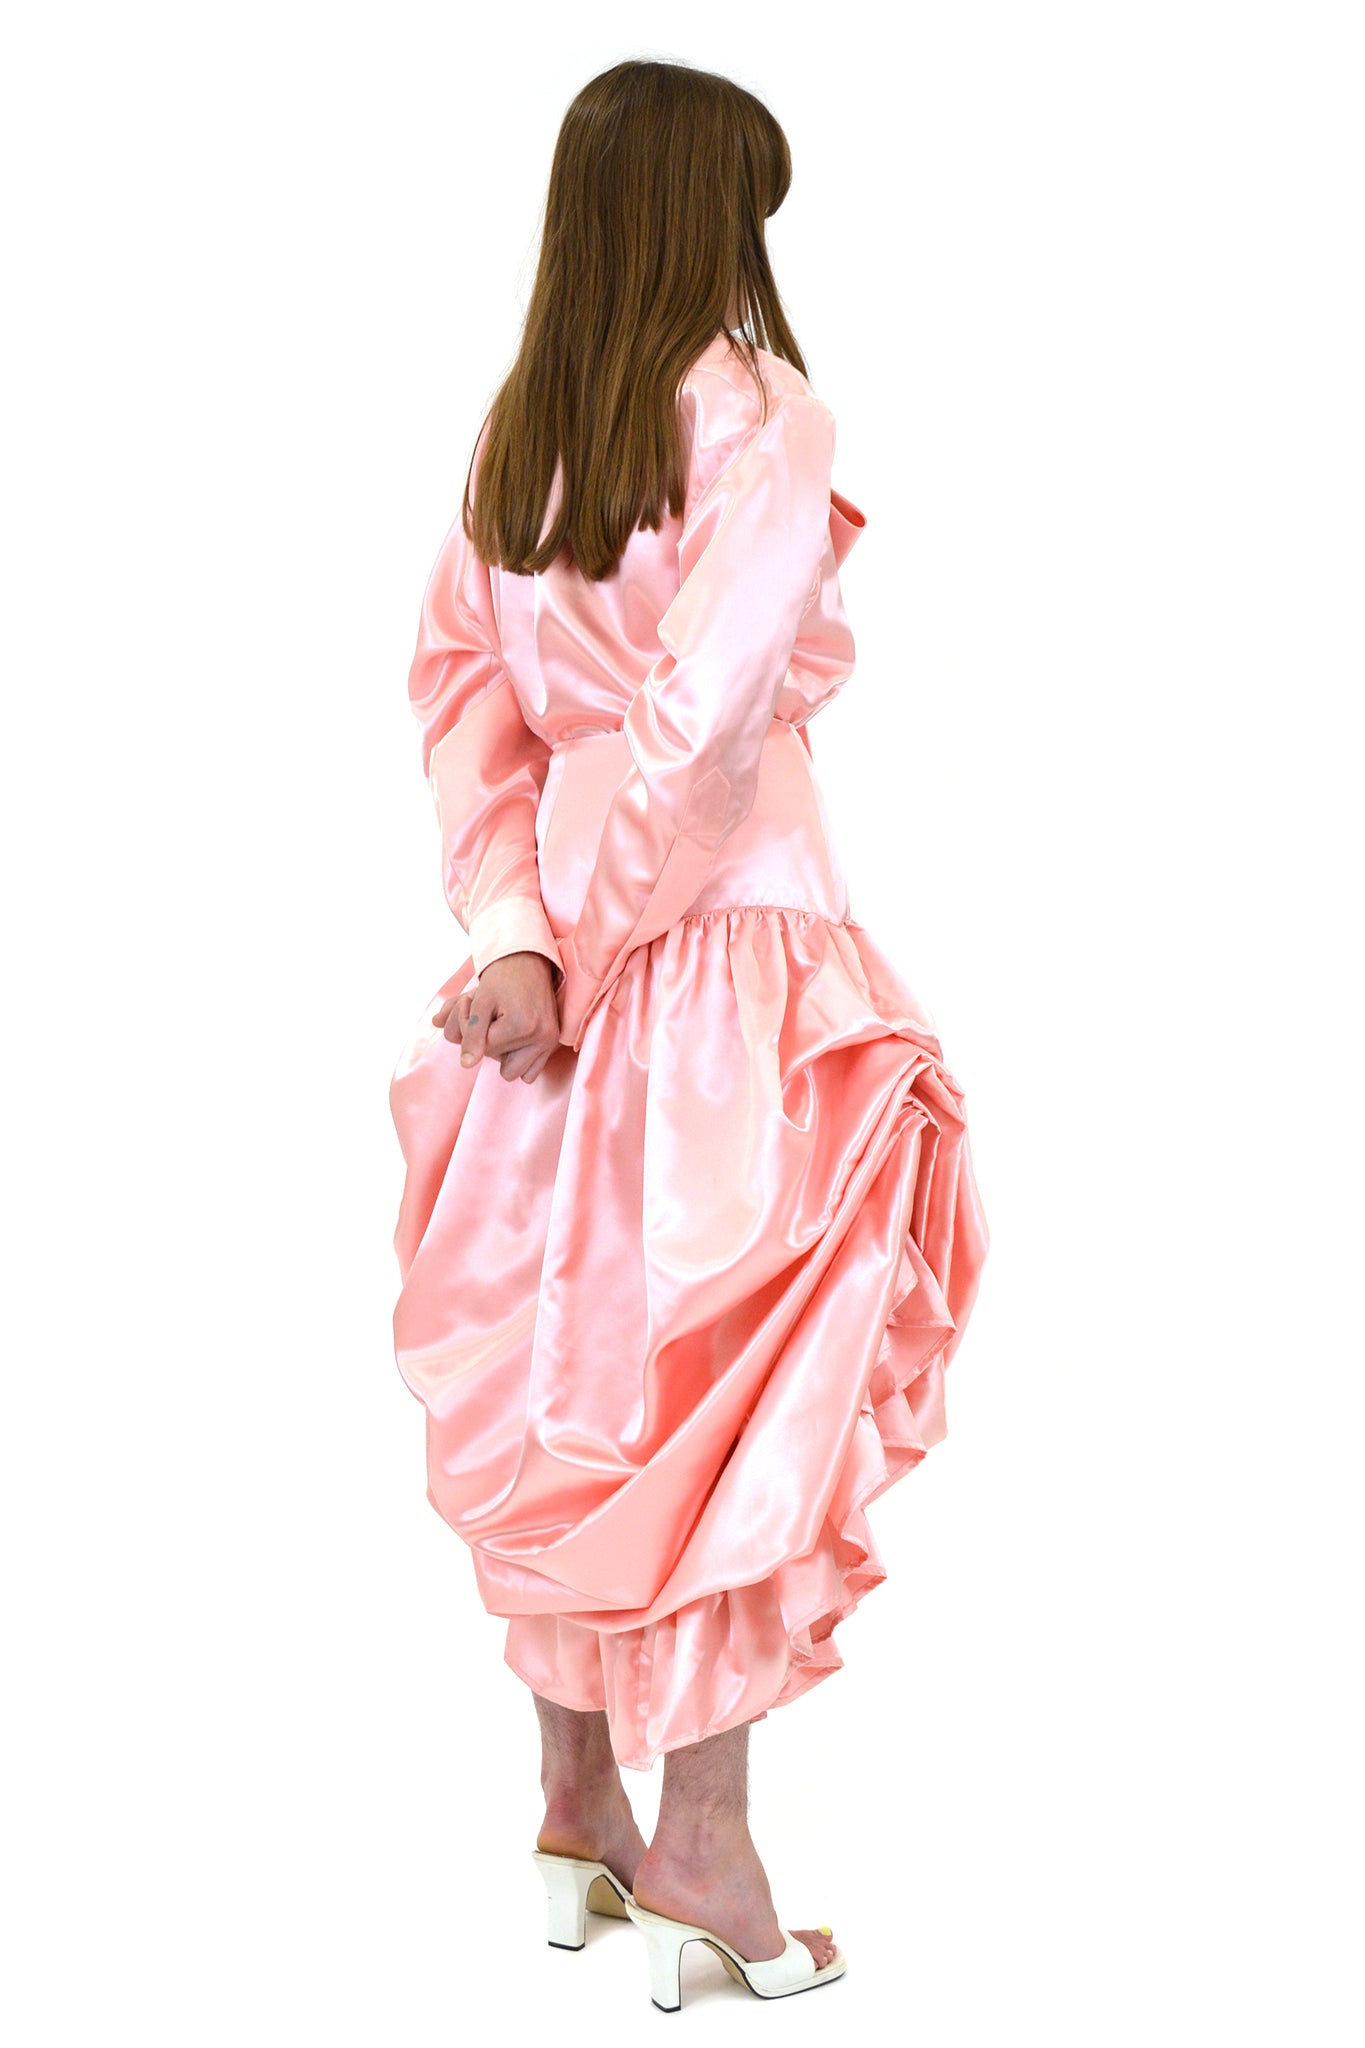 Vaquera Pink Satin Curtain Skirt